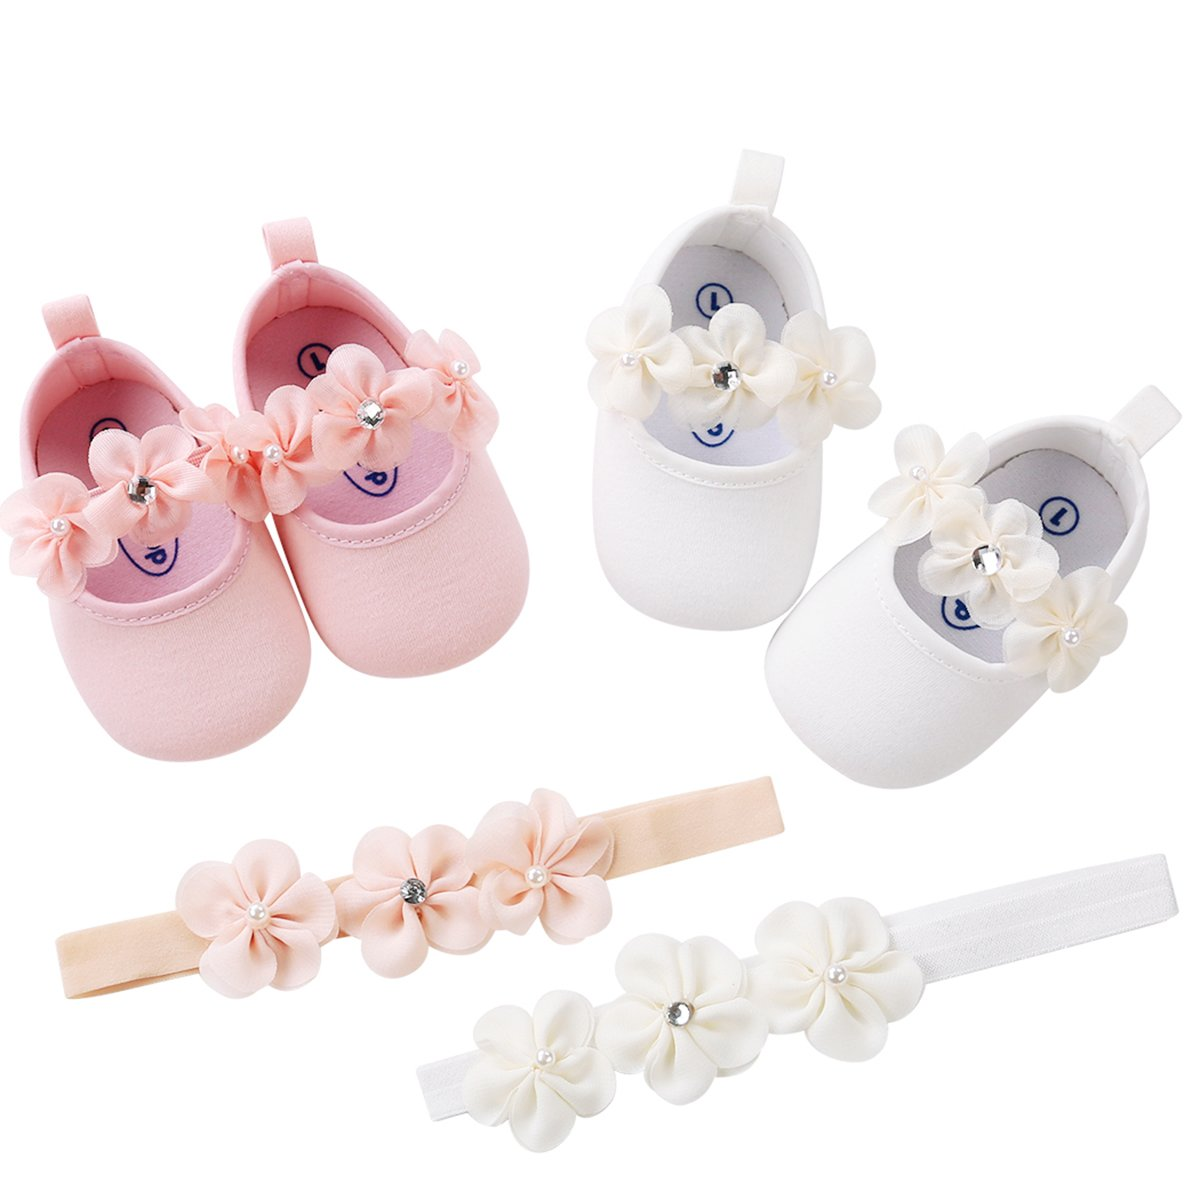 LIVEBOX Baby Infant Girls Shoes, Soft Sole Prewalker Mary Jane Princess Dress Crib Shoes with Free Baby Headband for Attend Wedding Birthday Party Events (White, S) by LIVEBOX (Image #6)